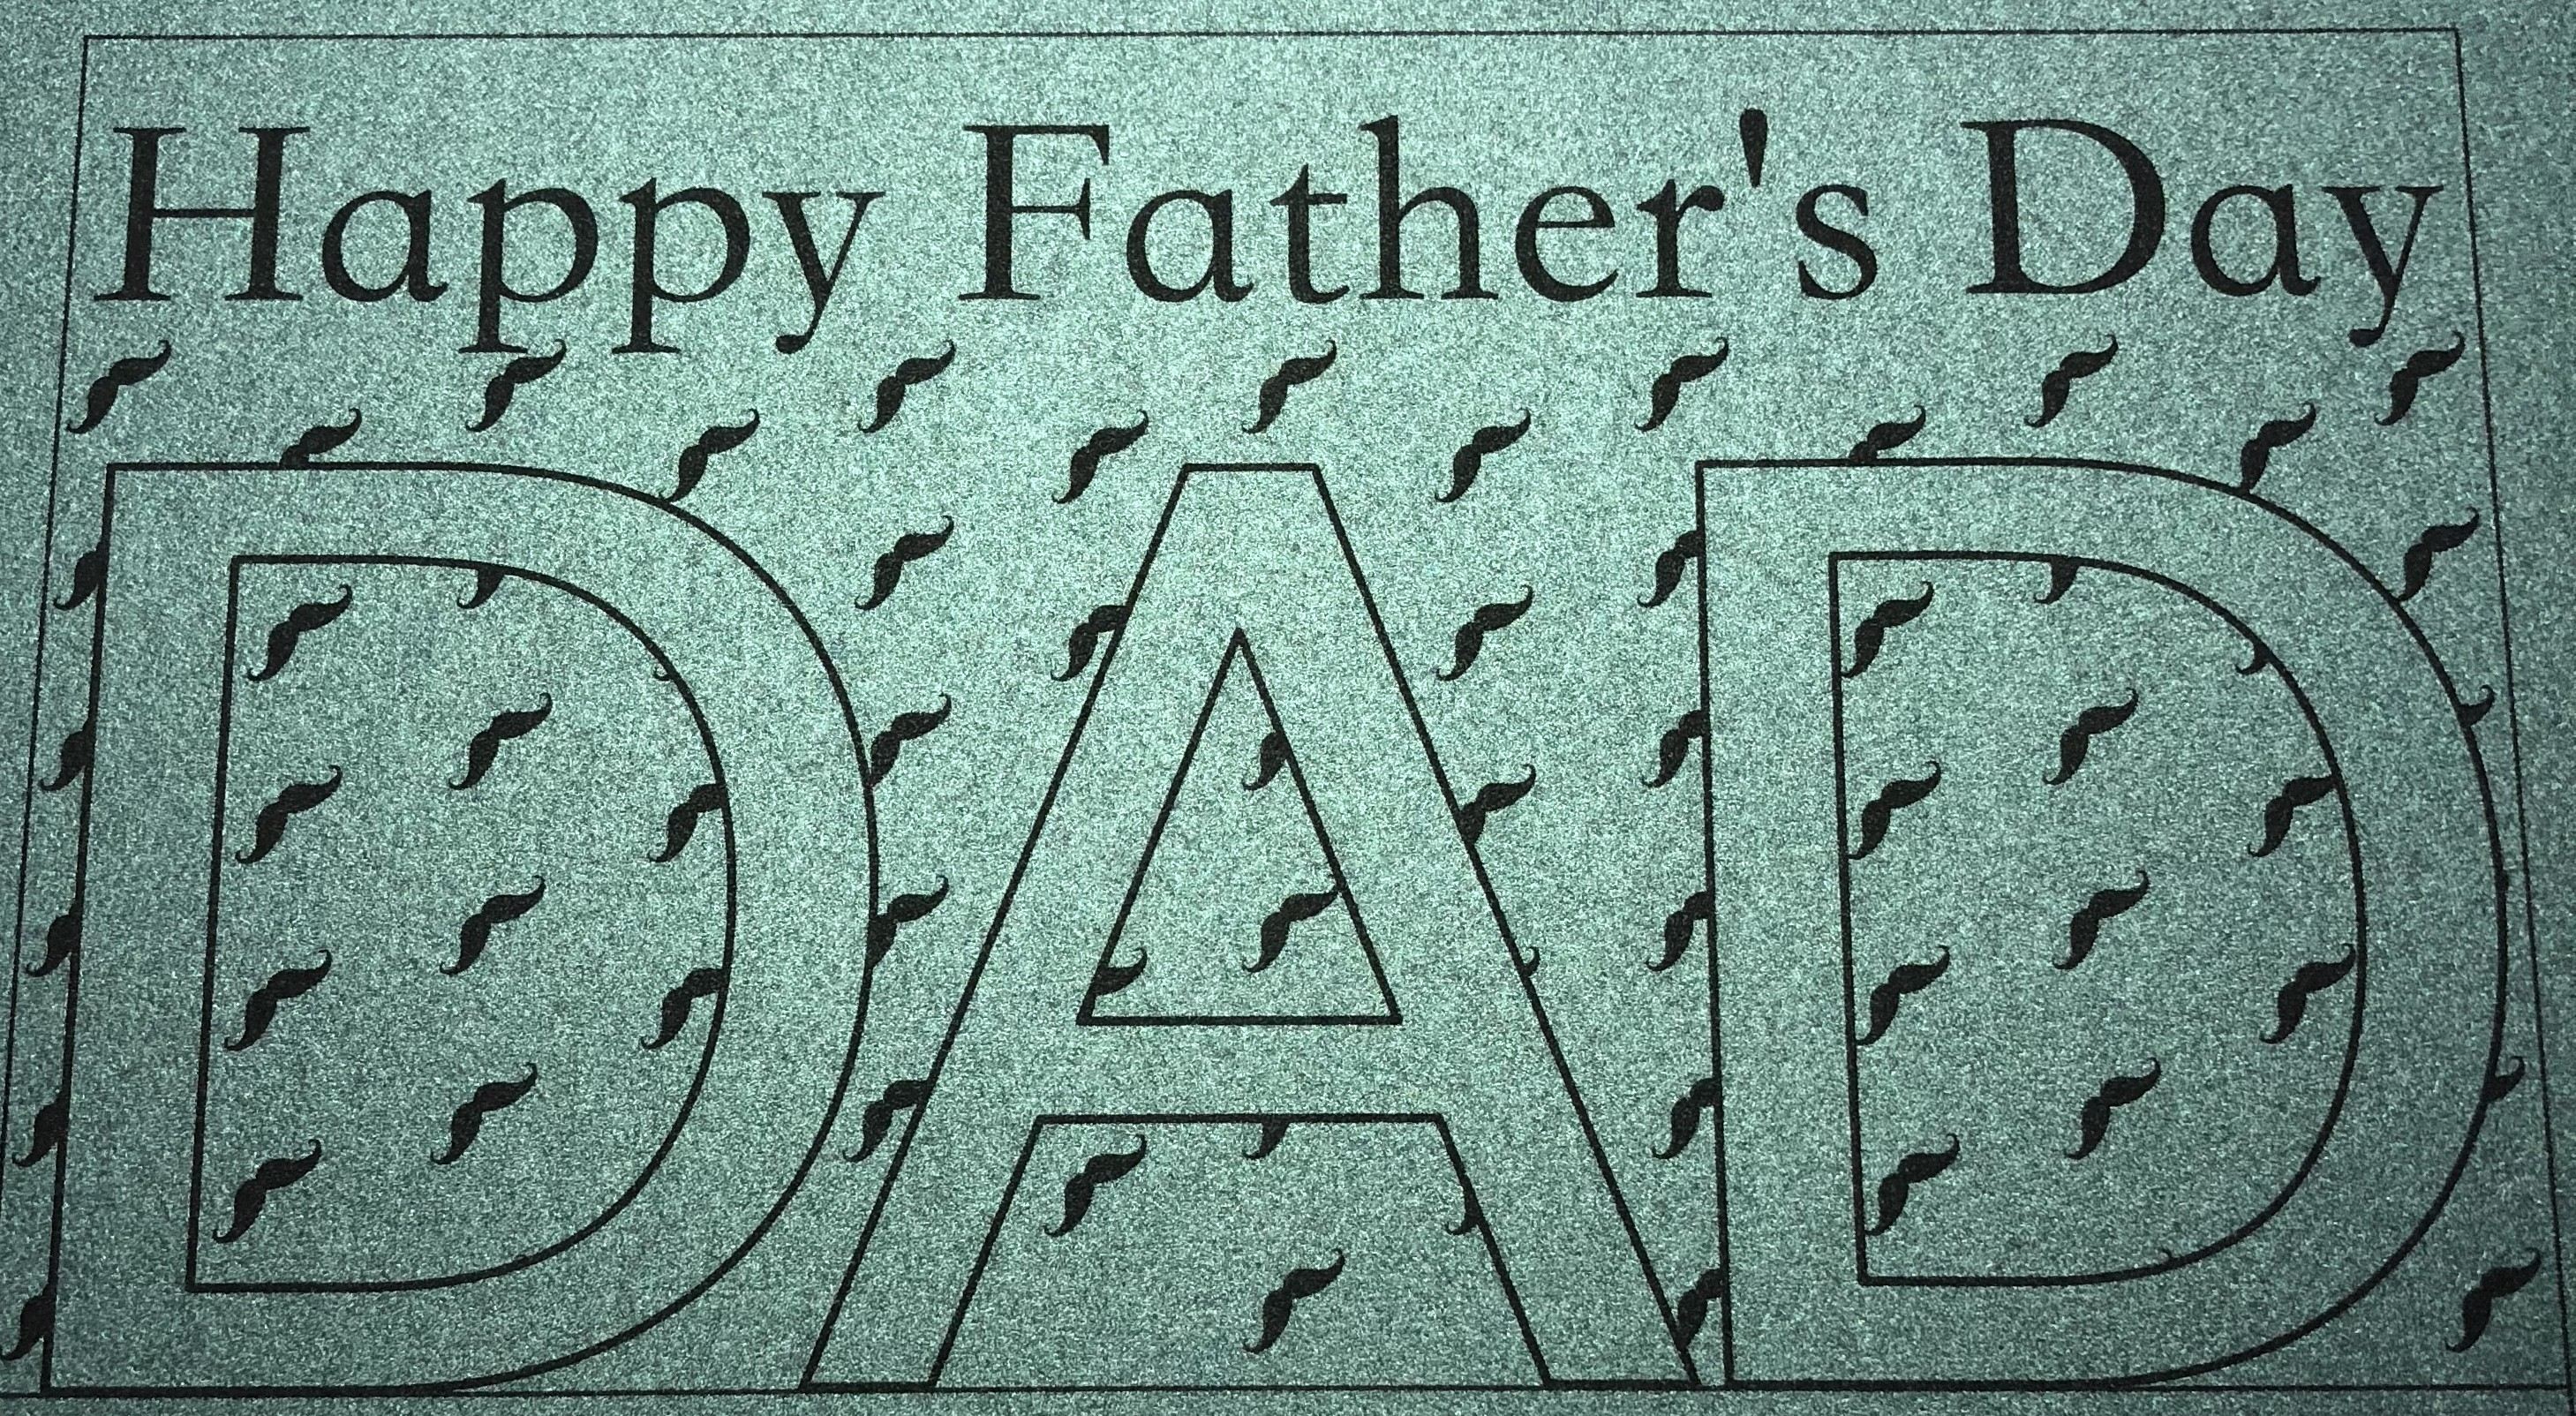 PaperPapersFatherDayCard04 celebratory father's day card - PaperPapersFatherDayCard04 - Celebratory Father's Day Card